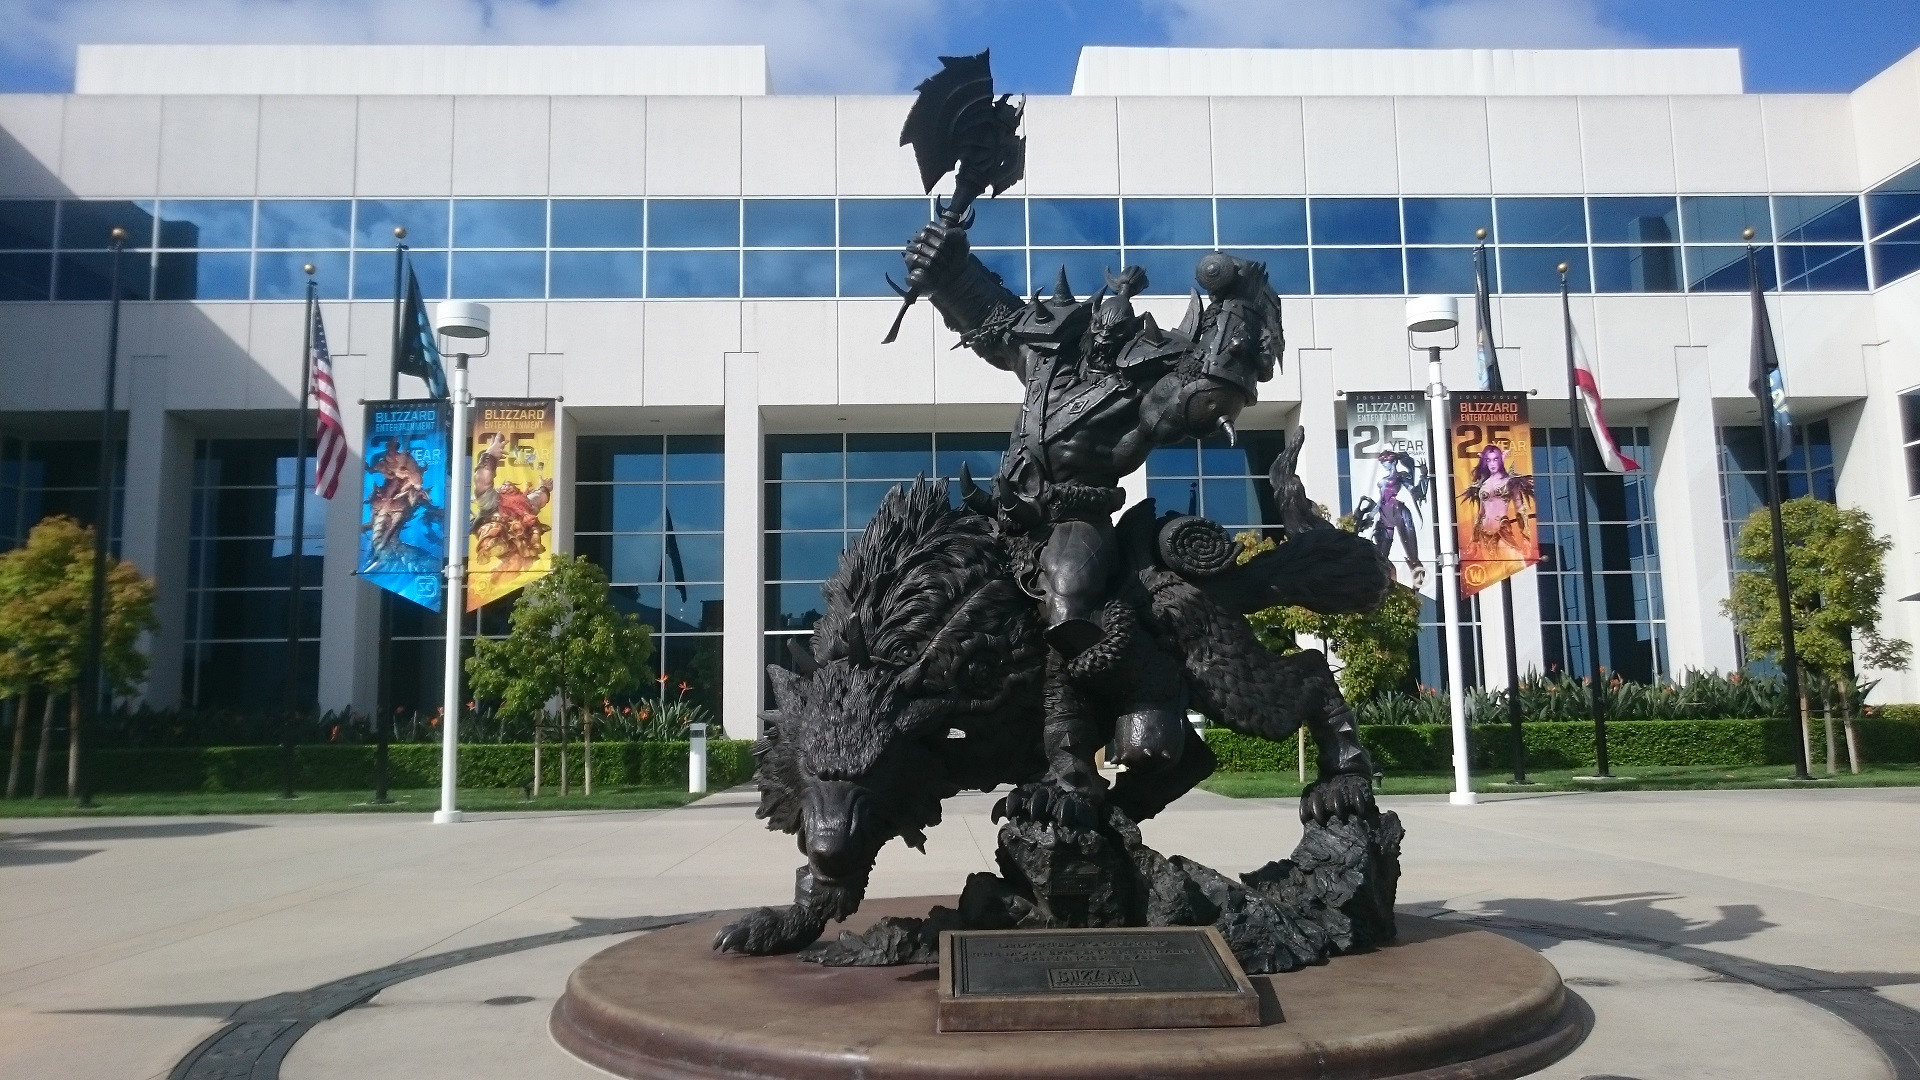 Blizzard employees reveal salaries to highlight wage disparity